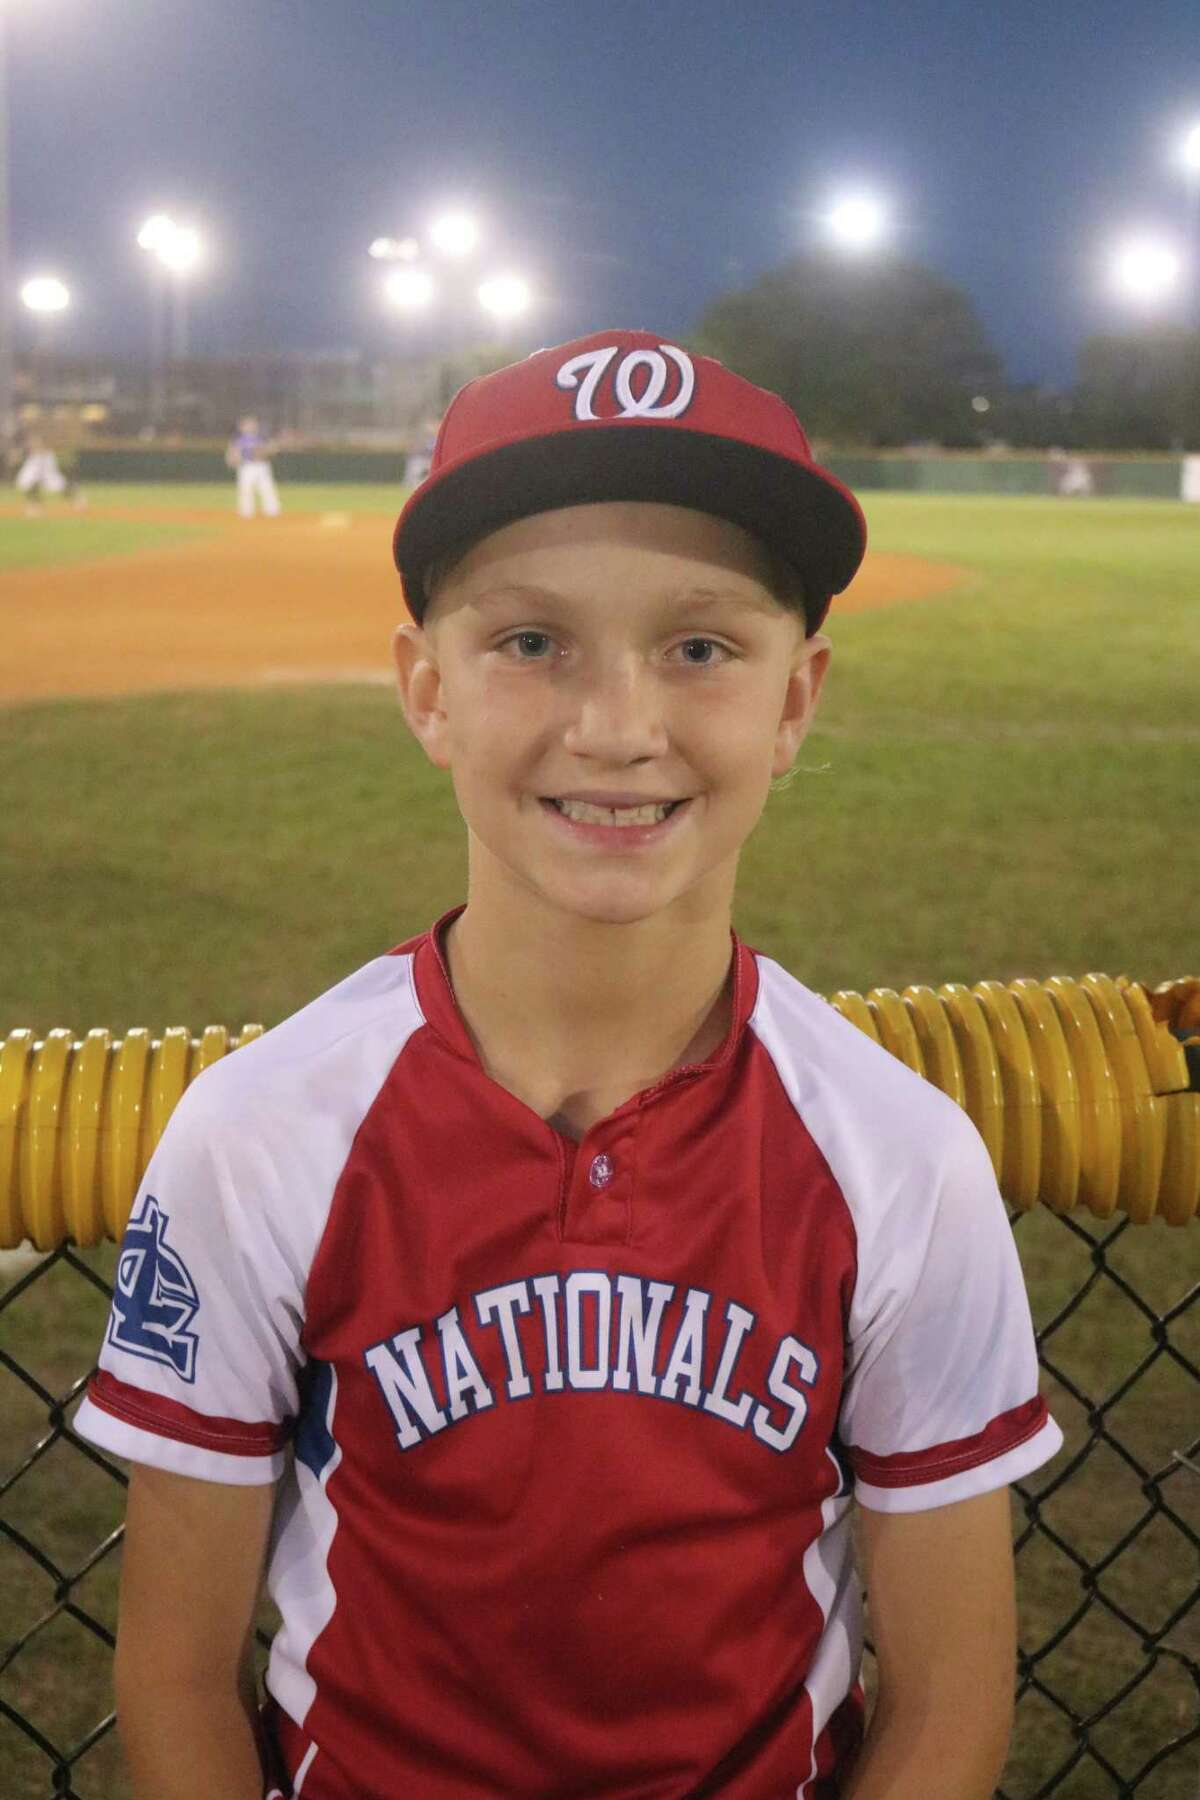 Cash Broussard was the starting and winning pitcher Monday night for a Nationals team that has found its groove at John Paul Field.